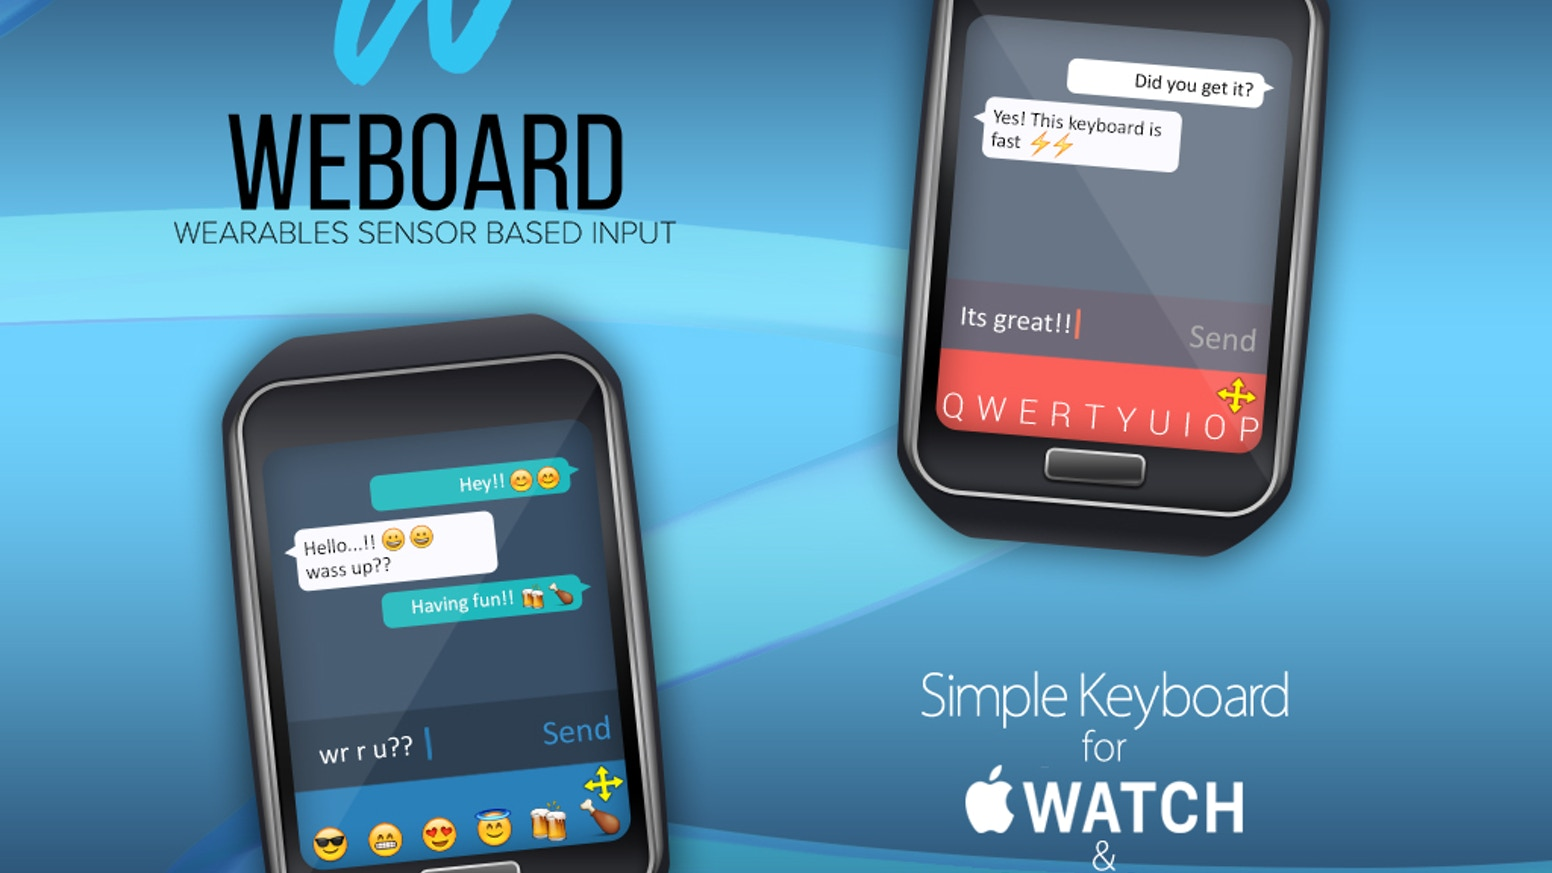 Weboard Simple Keyboard For Apple Watch Android Wear By Erik